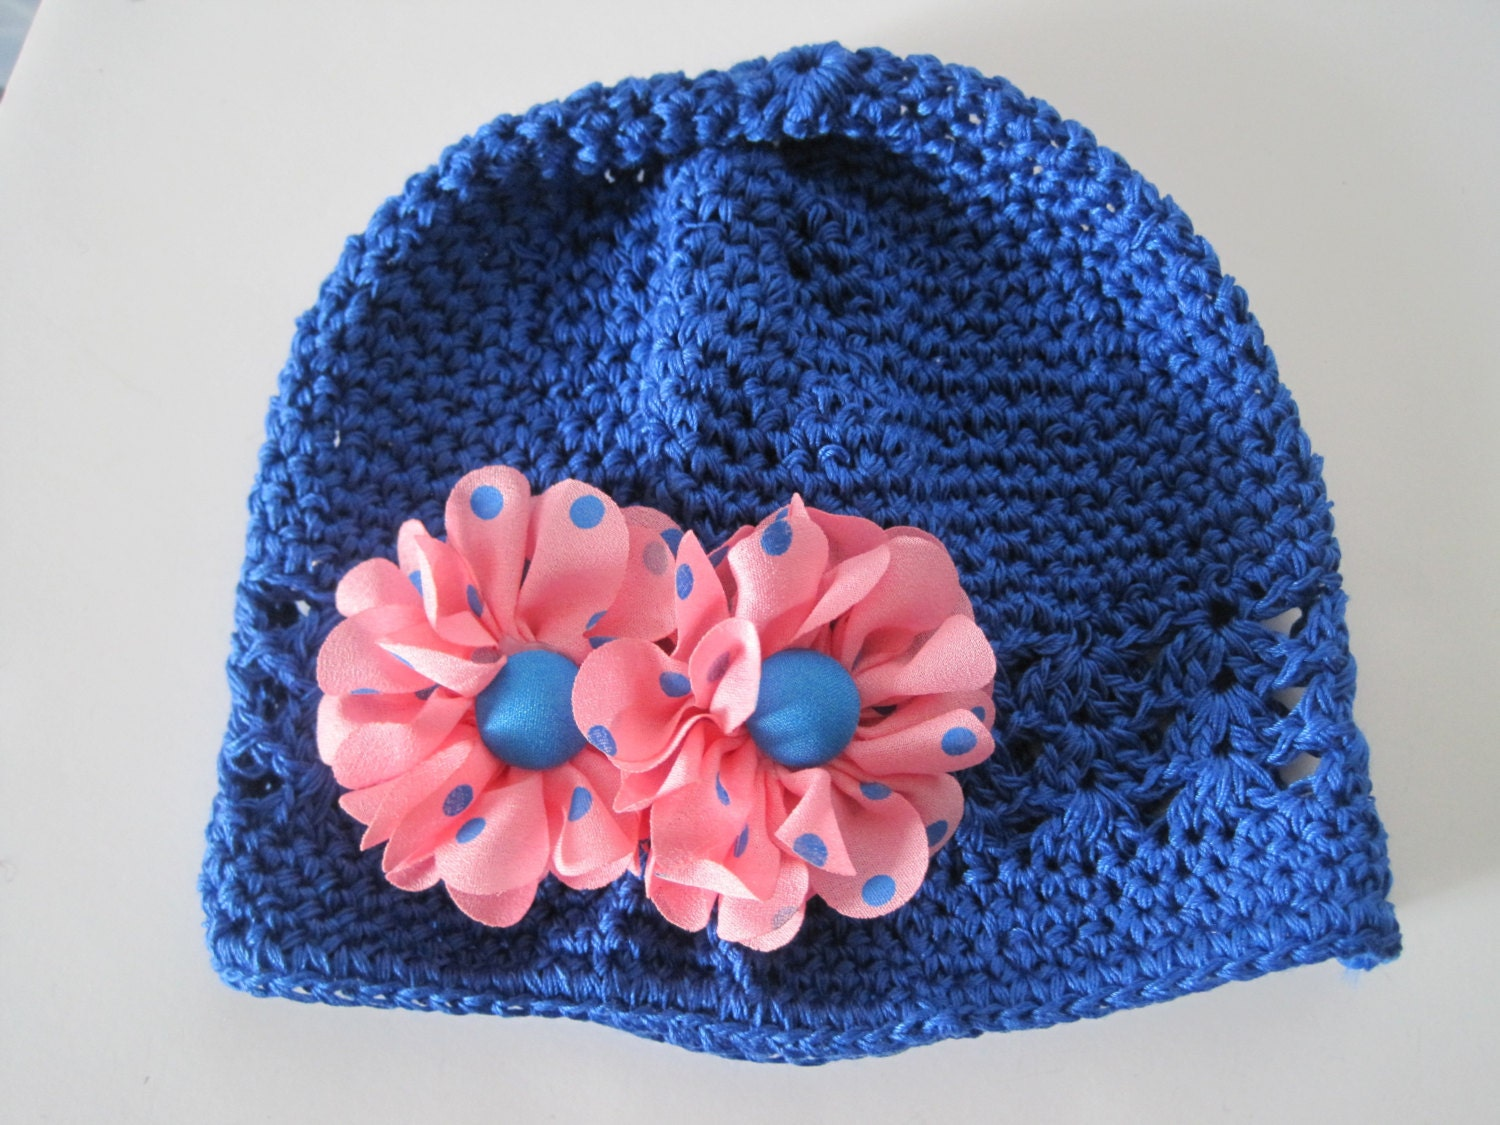 Kufi Beanie Hat Crochet Pattern : Baby Hat Royal Blue Crochet Kufi Beanie with Adorable Pink